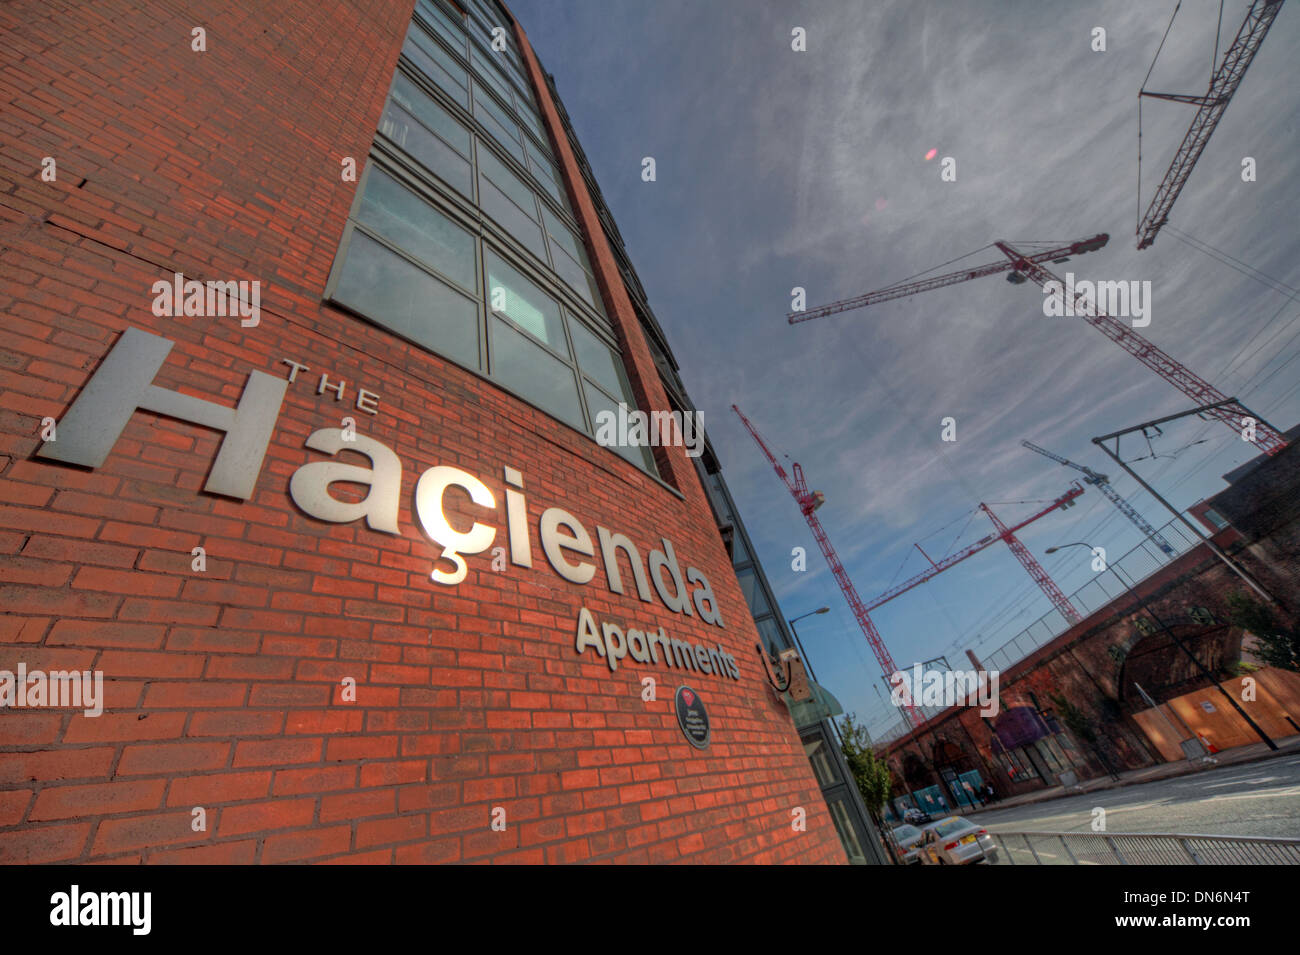 Fac51 Hacienda Apartments, Whitworth St Manchester England UK - Stock Image